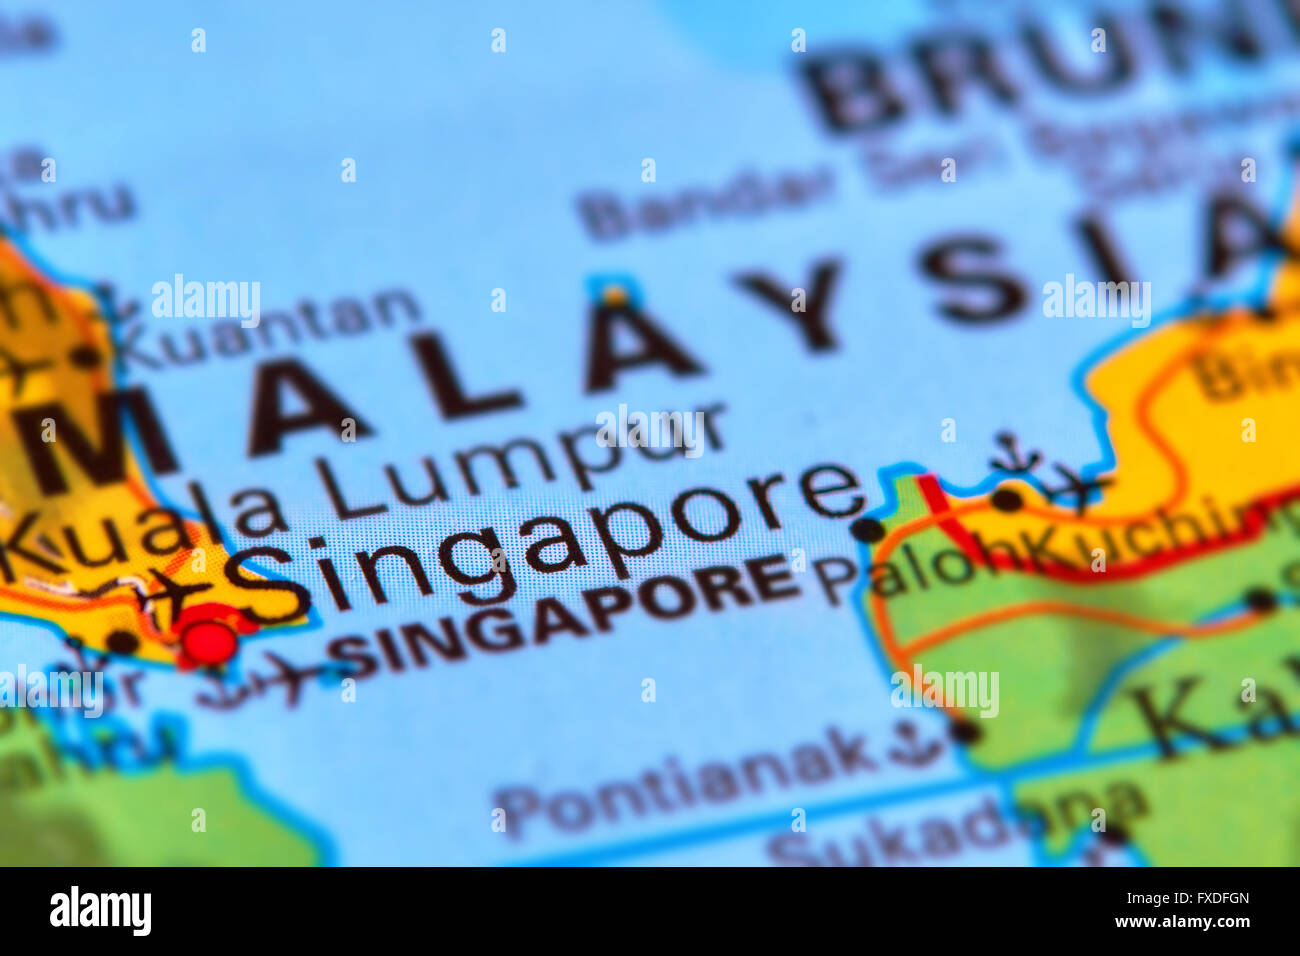 Singapore City-state in Asia on the World Map Stock Photo: 102330501 ...